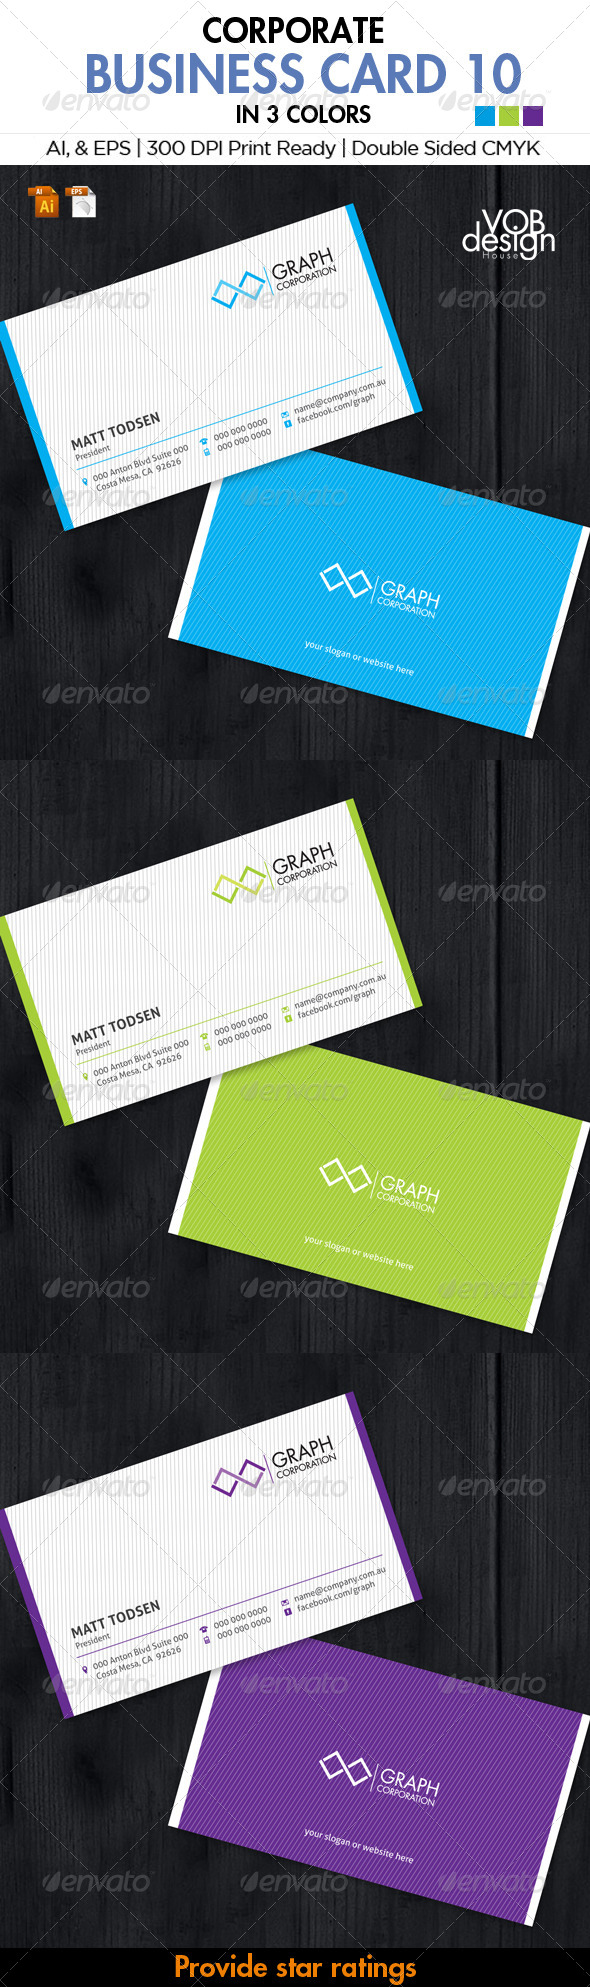 Corporate Business Card 10 - Business Cards Print Templates